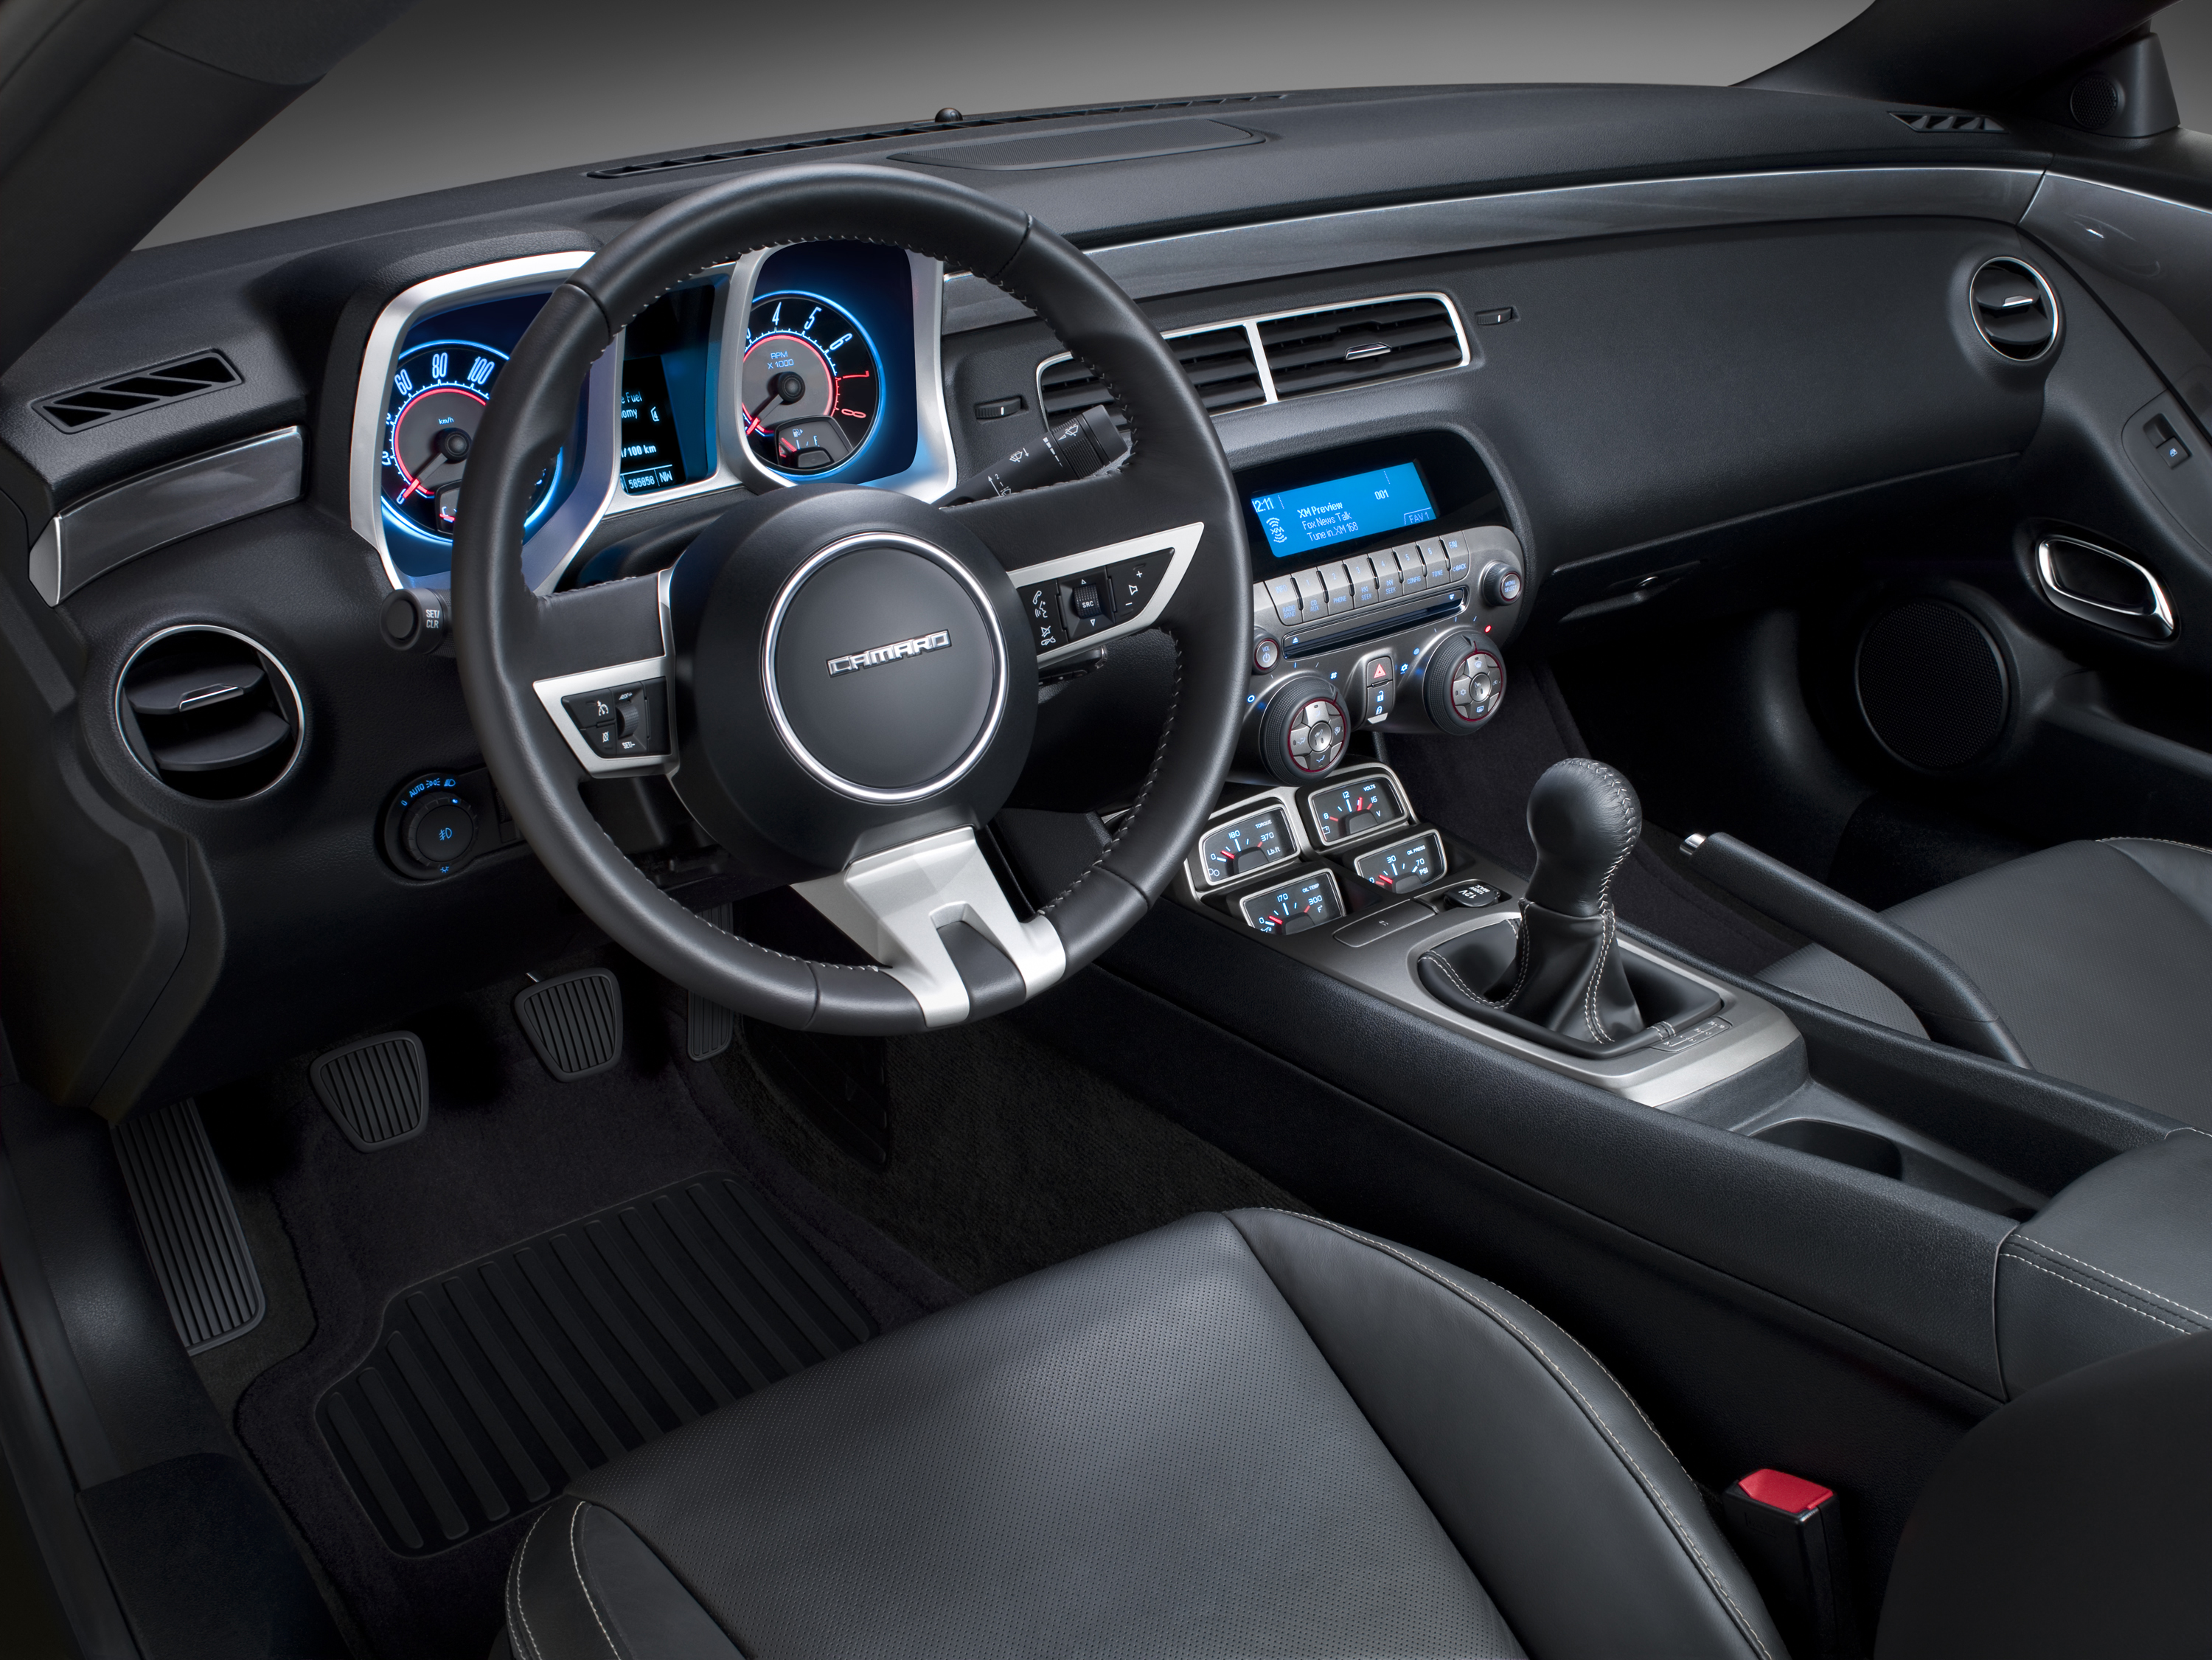 forum wallpapers official camaro forums chevy interior views showthread kb name size